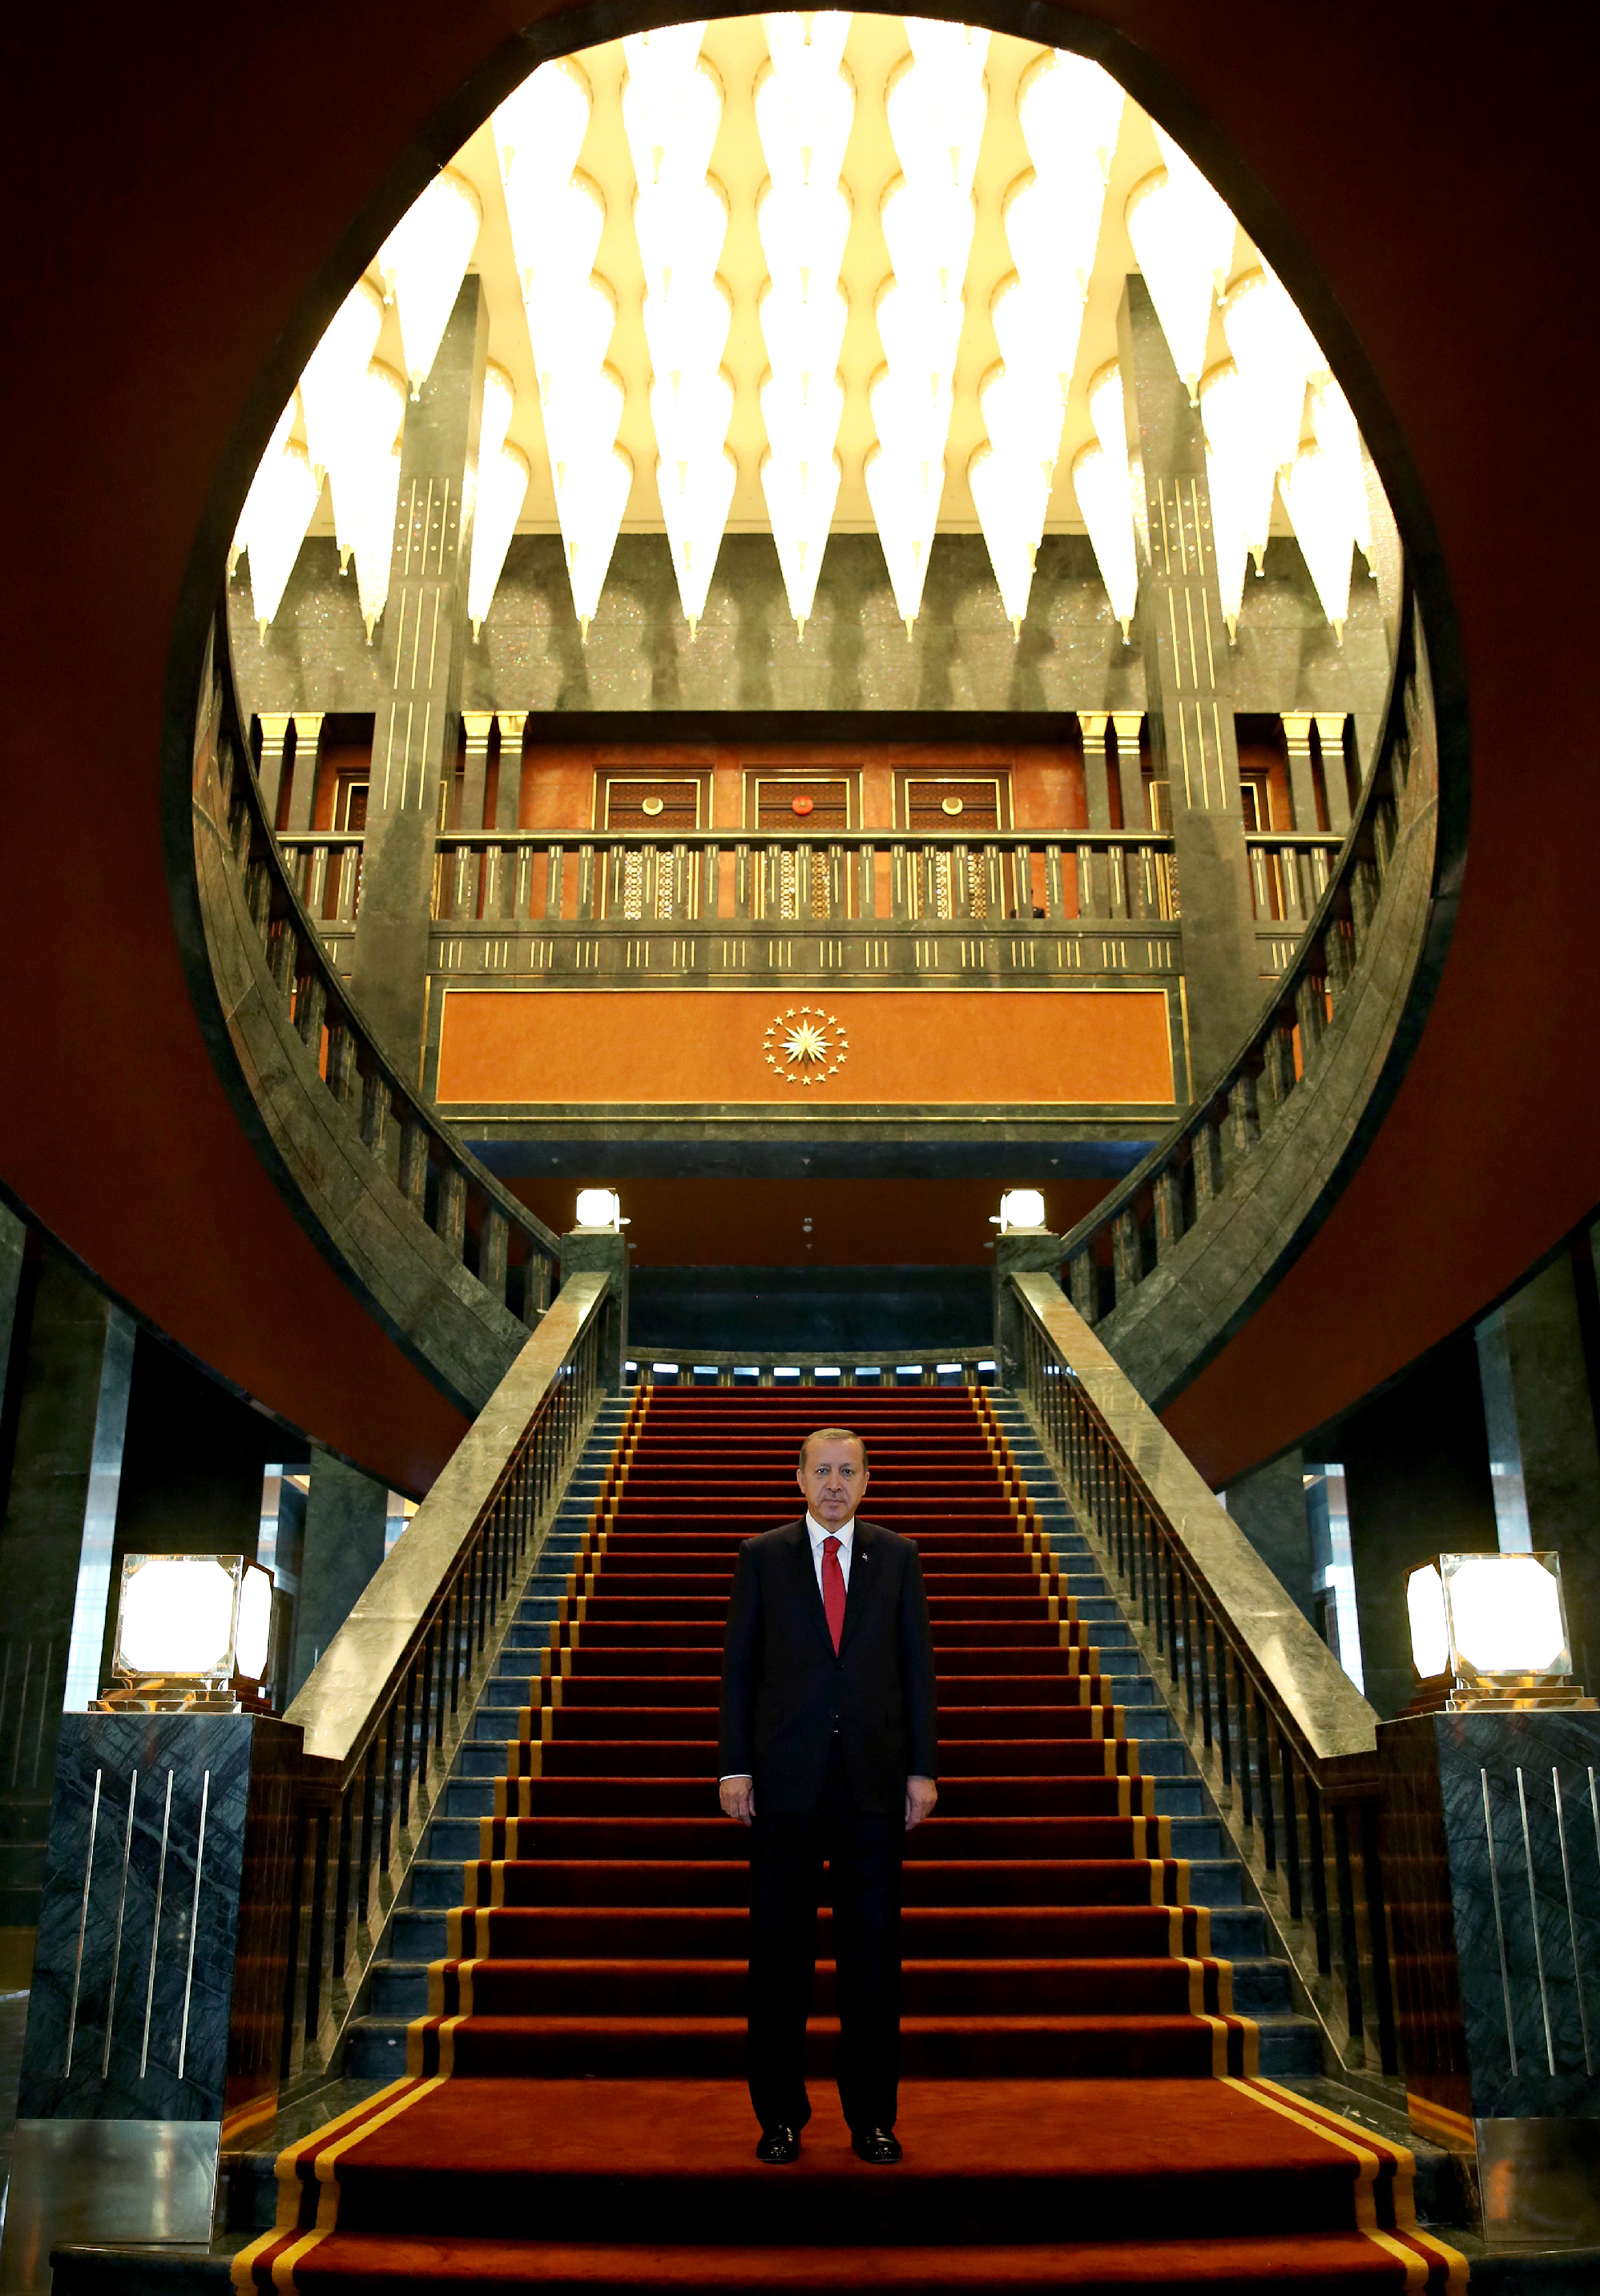 Turkey's President And His 1,100-Room 'White Palace'